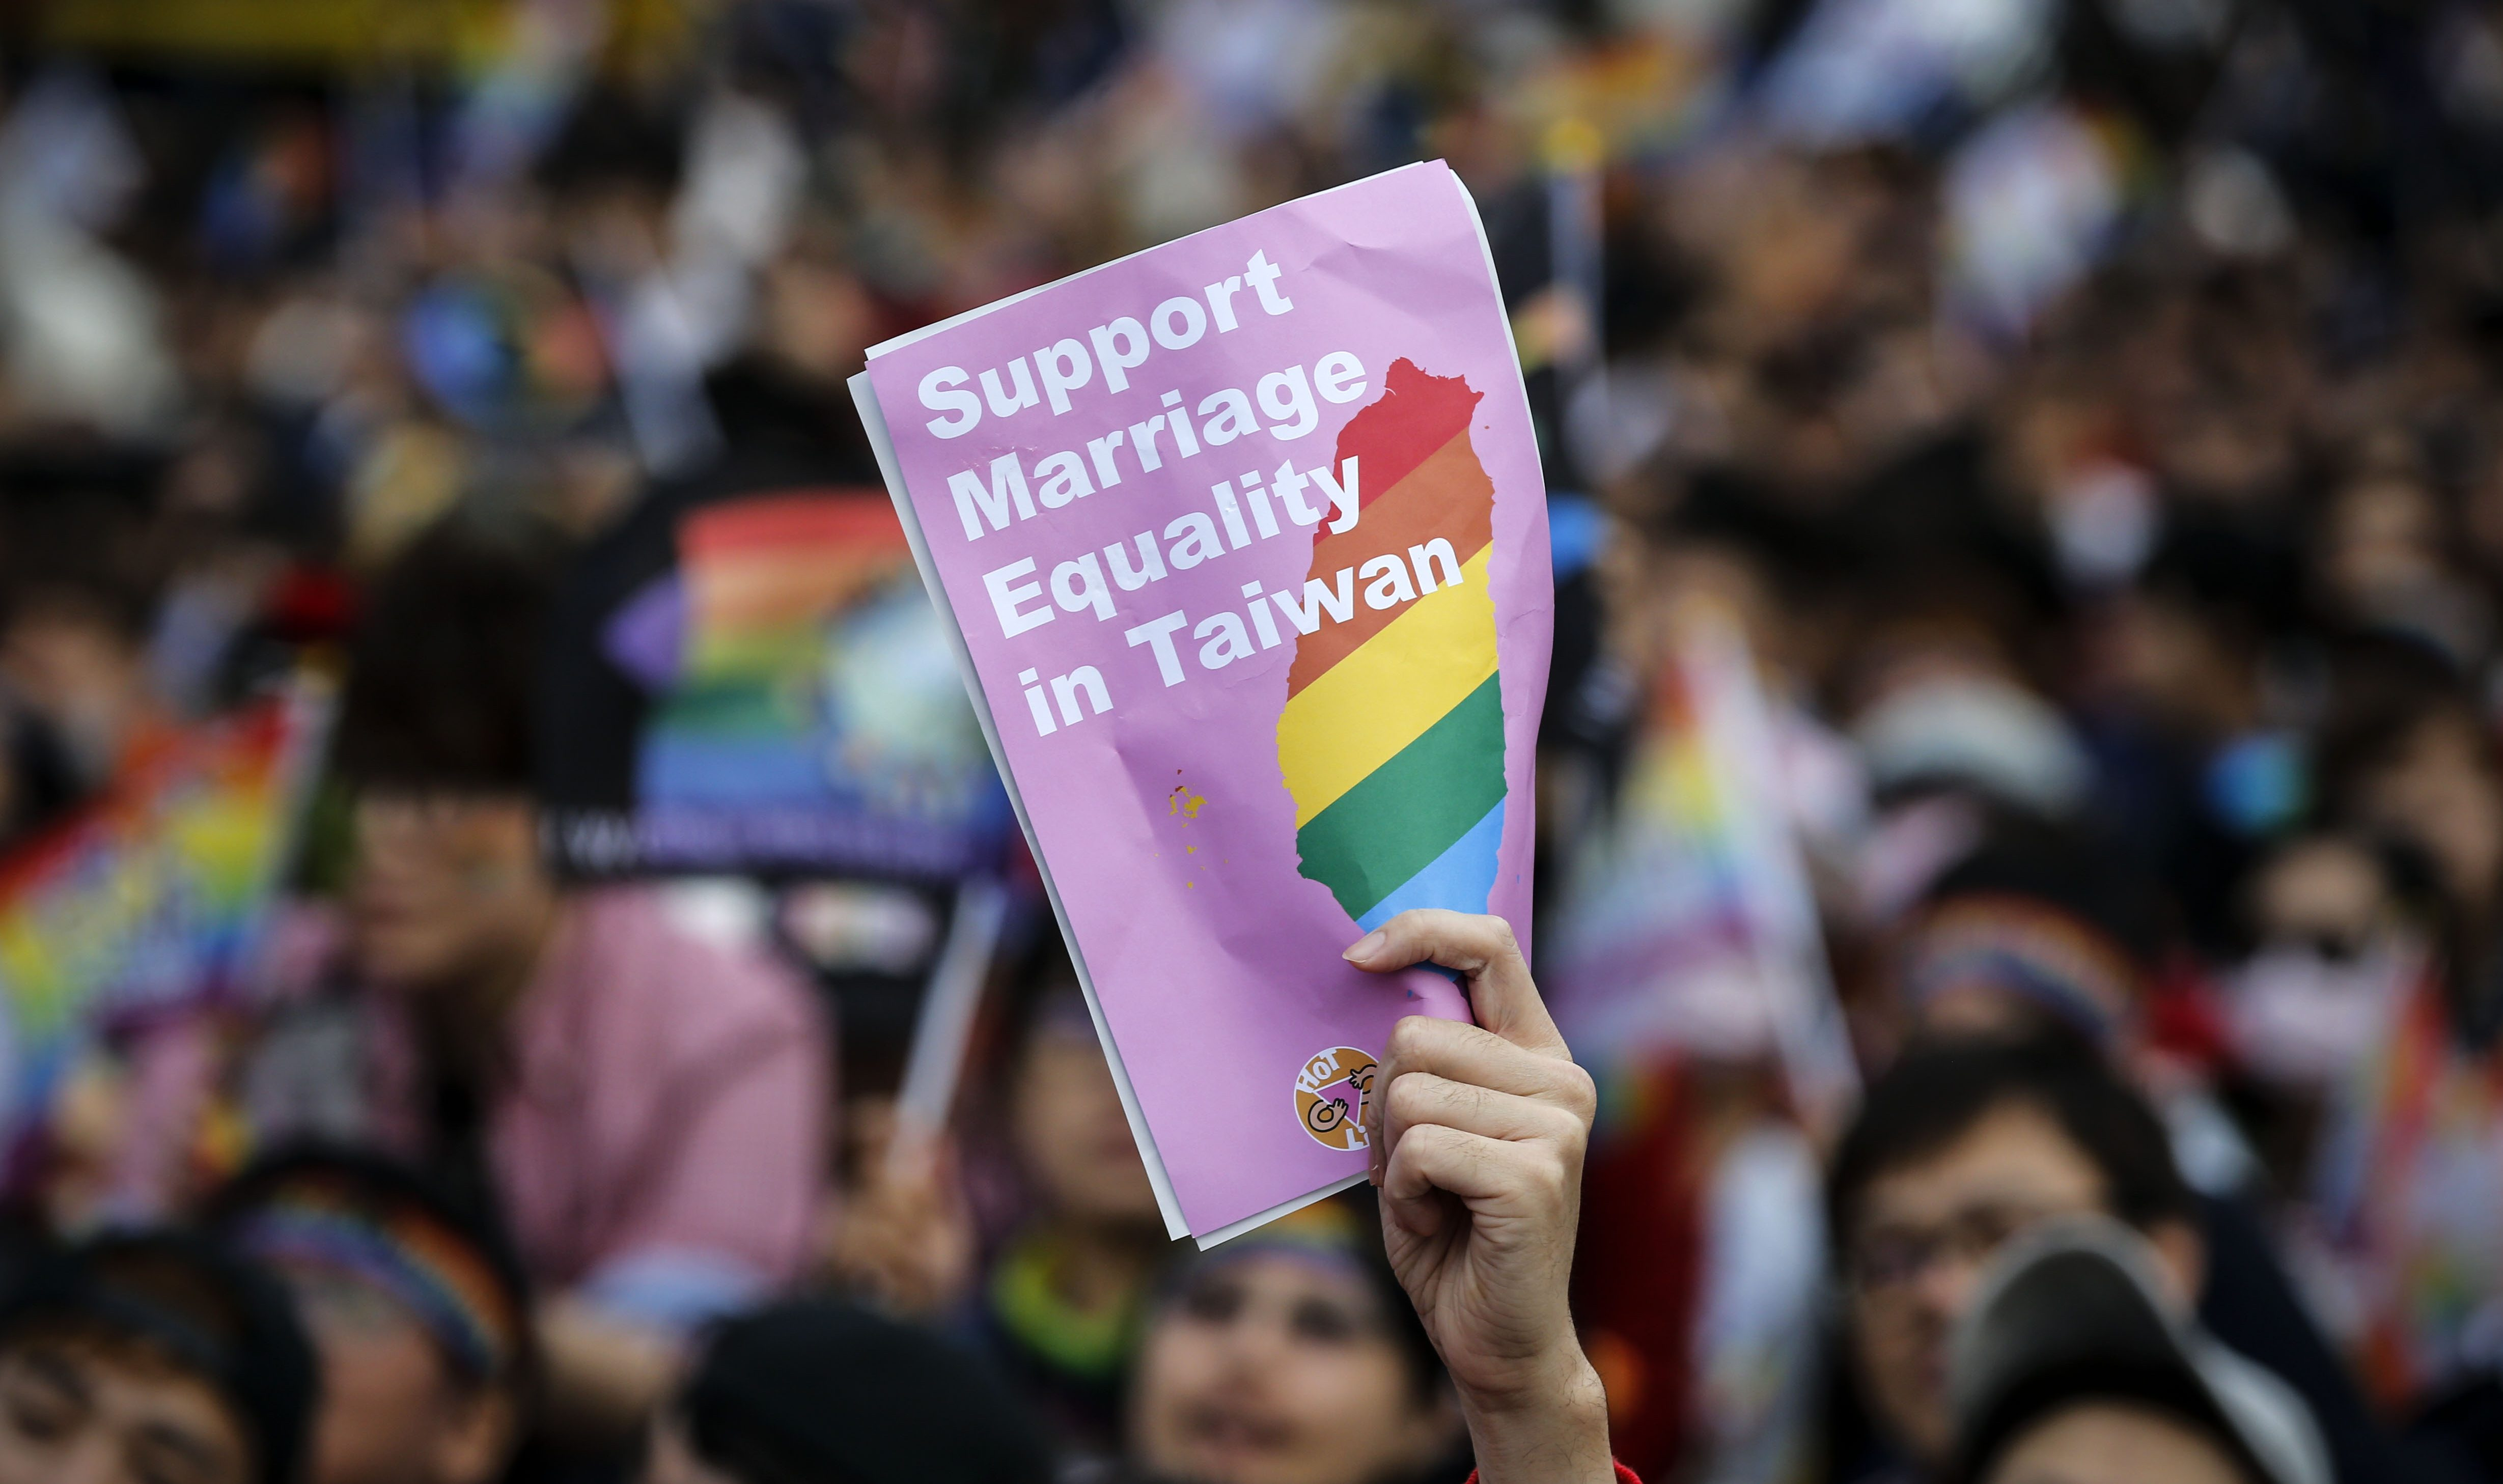 A supporter of LGBT rights at a rally to support the legalizing of same-sex marriage in Taipei, Taiwan, 10 December 2016.